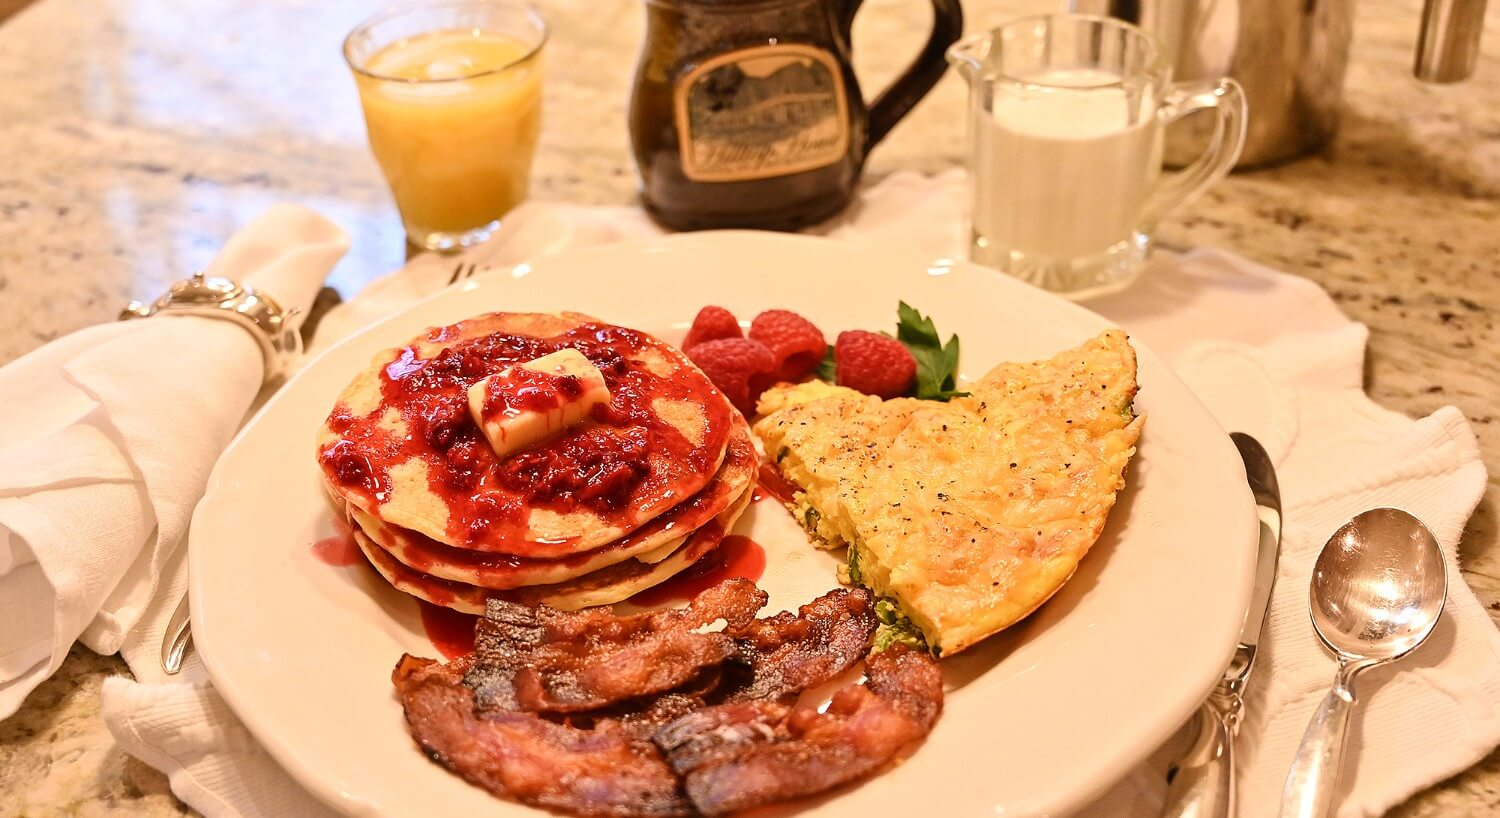 White breakfast plate showing pancakes with red berries, bacon and slice of egg quiche with raspberries